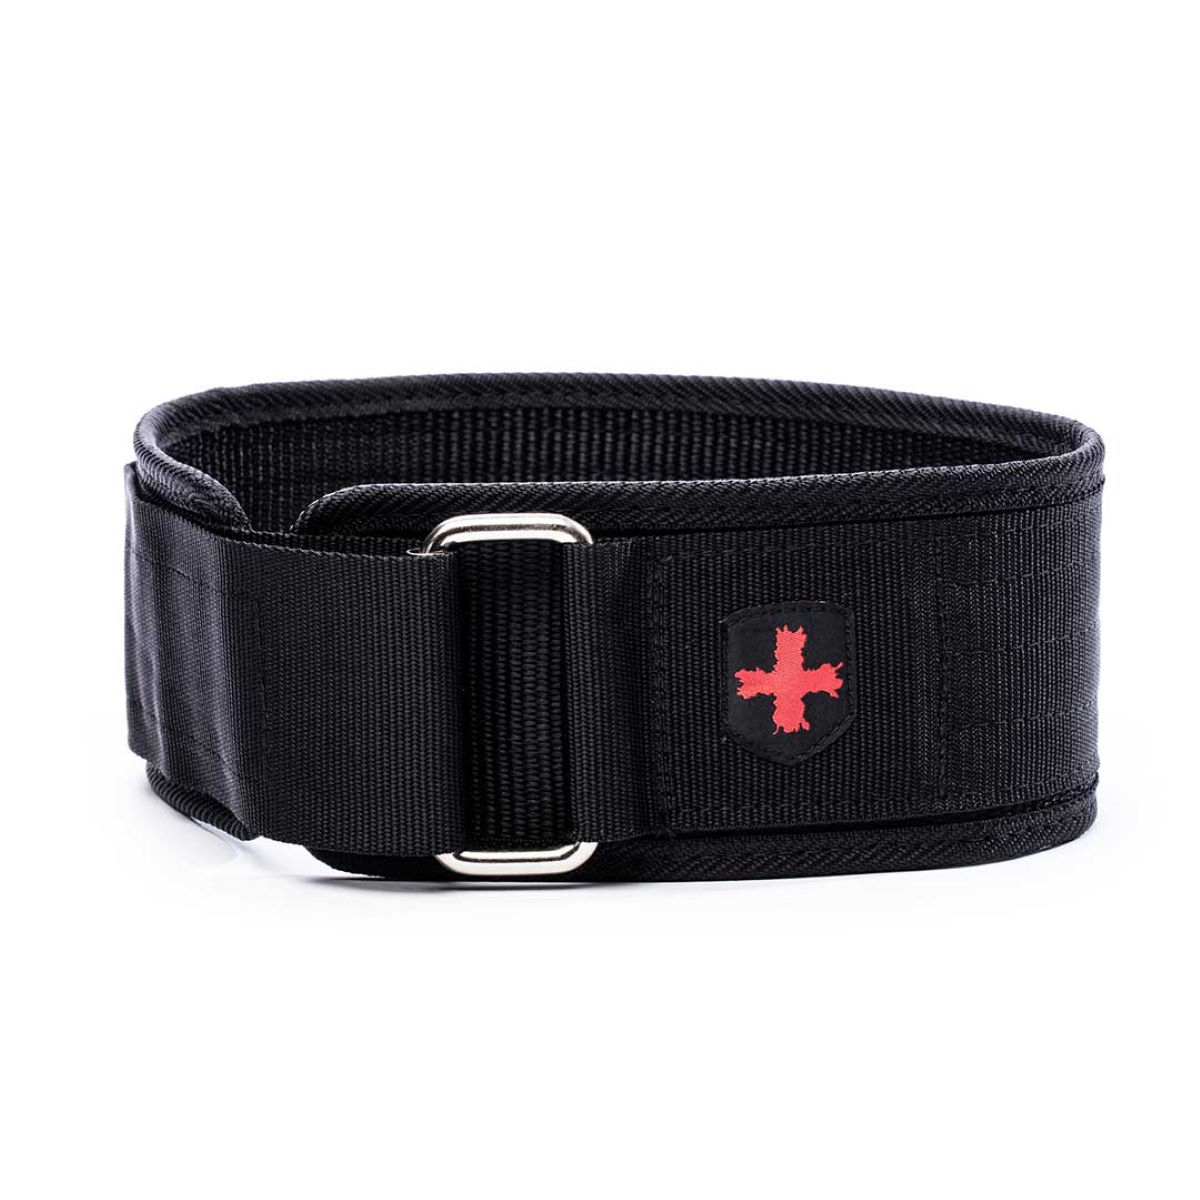 "Harbinger 4"" Nylon Belt - Entrenamiento general"